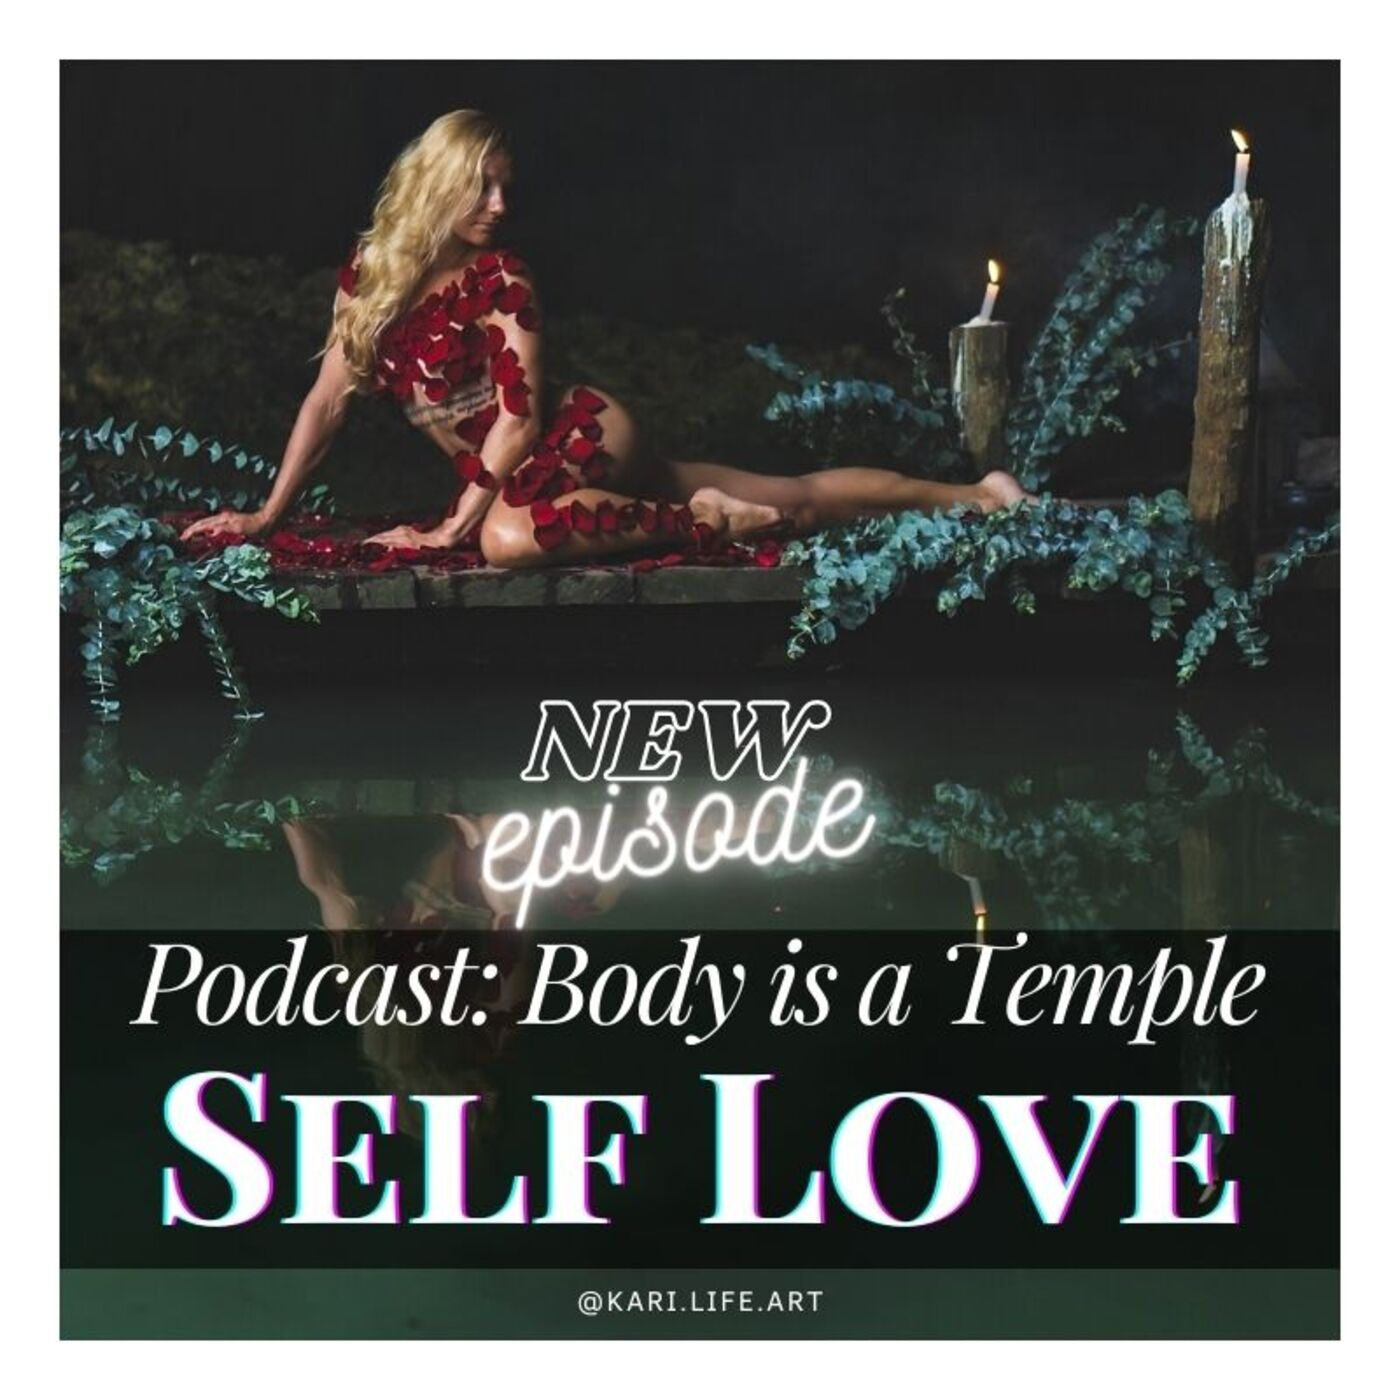 #038 [ BODY IS A TEMPLE ] Self Love Solo Episode